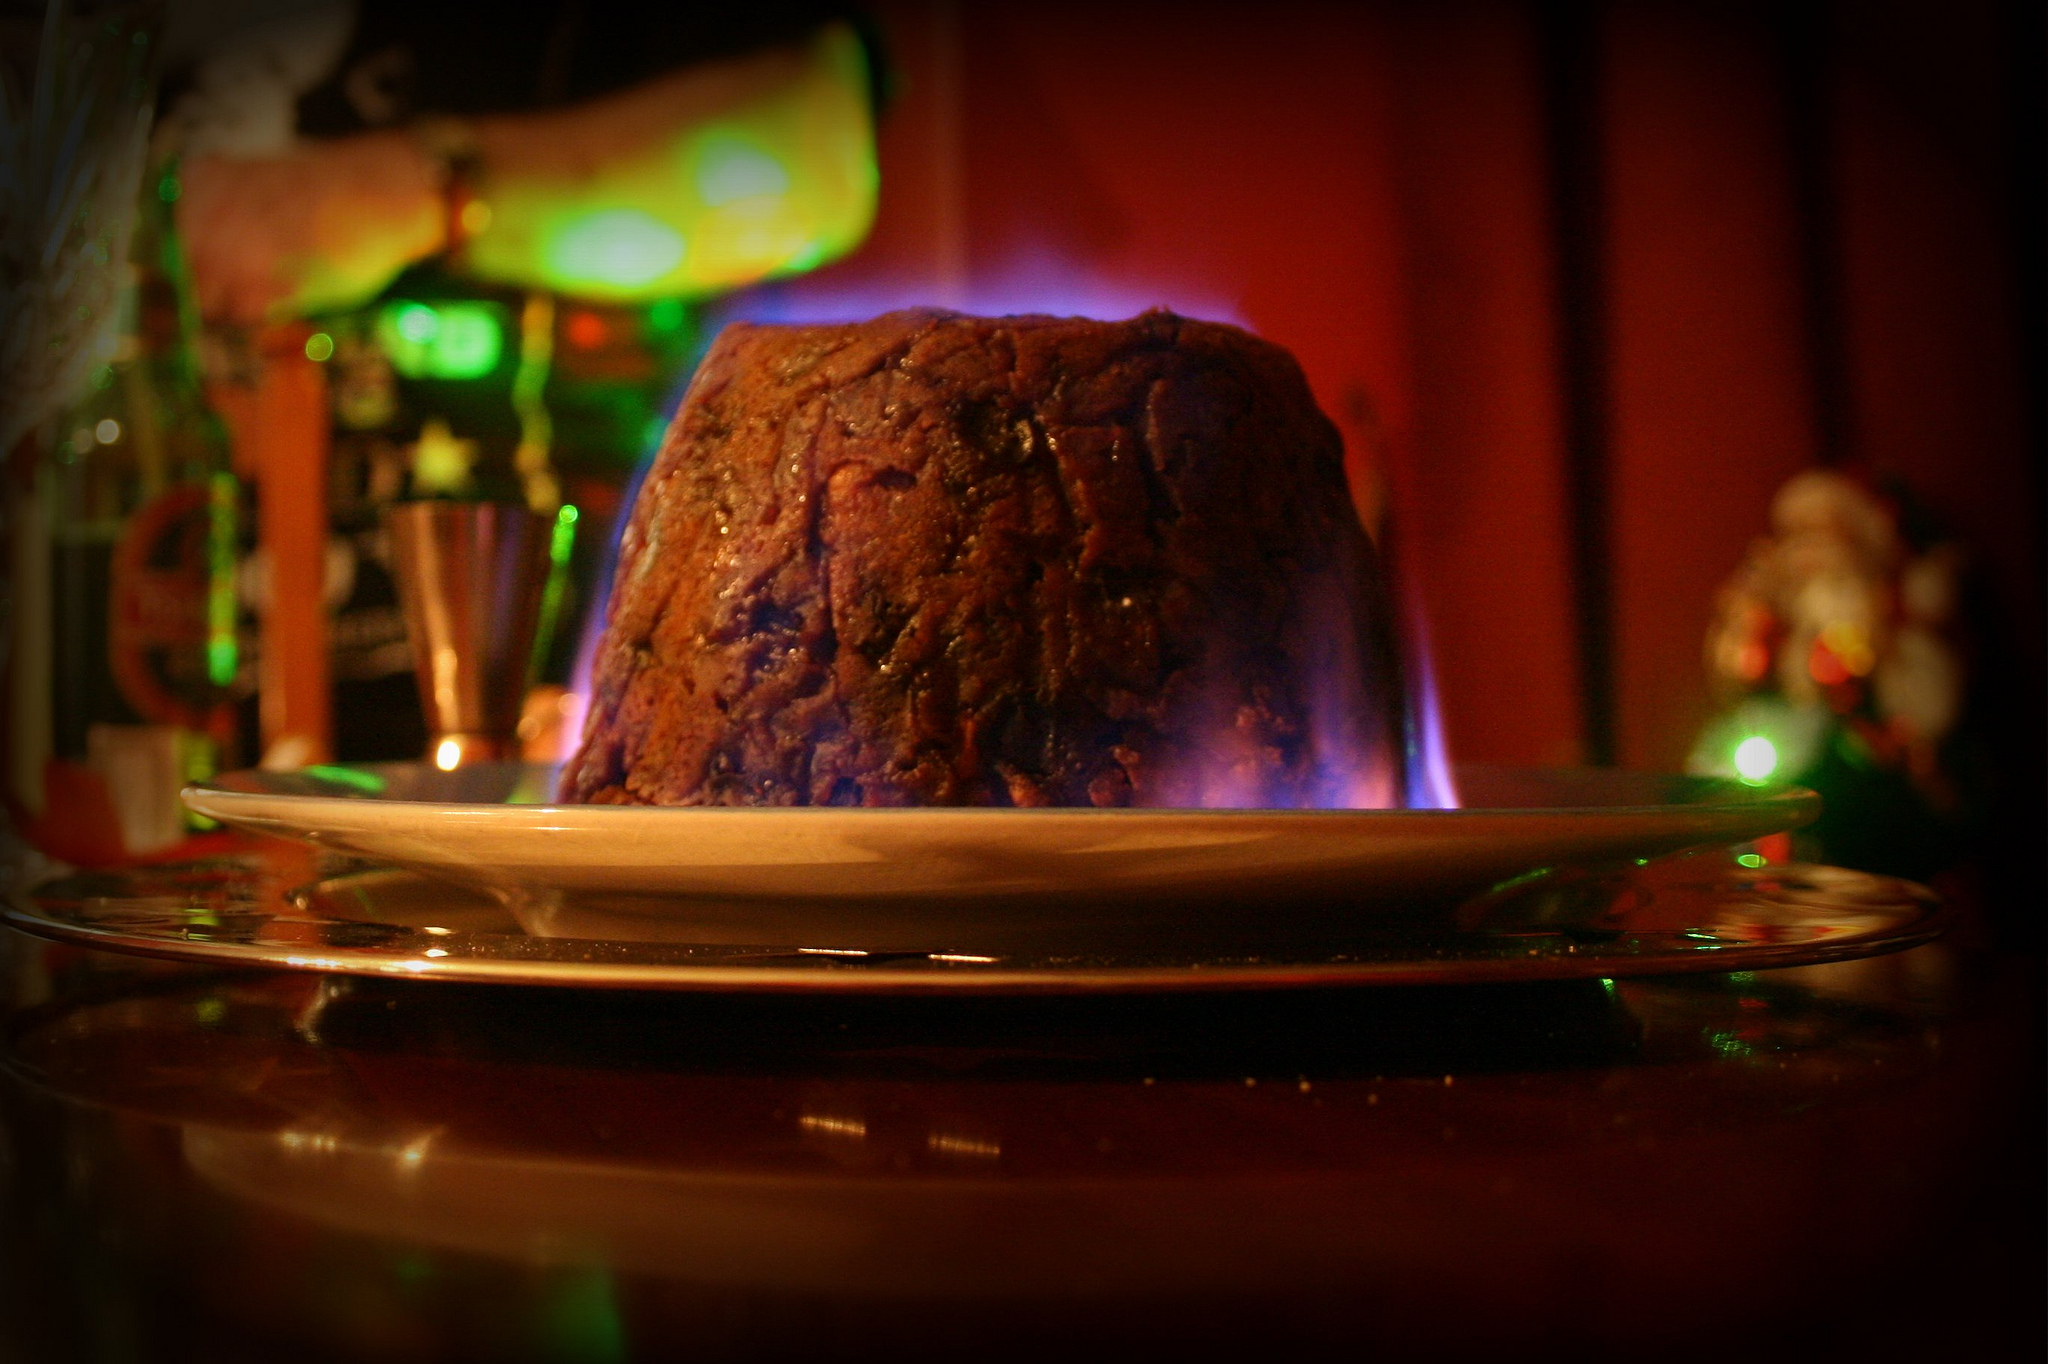 Photo of Christmas pudding by Pete, licensed under CC BY 2.0